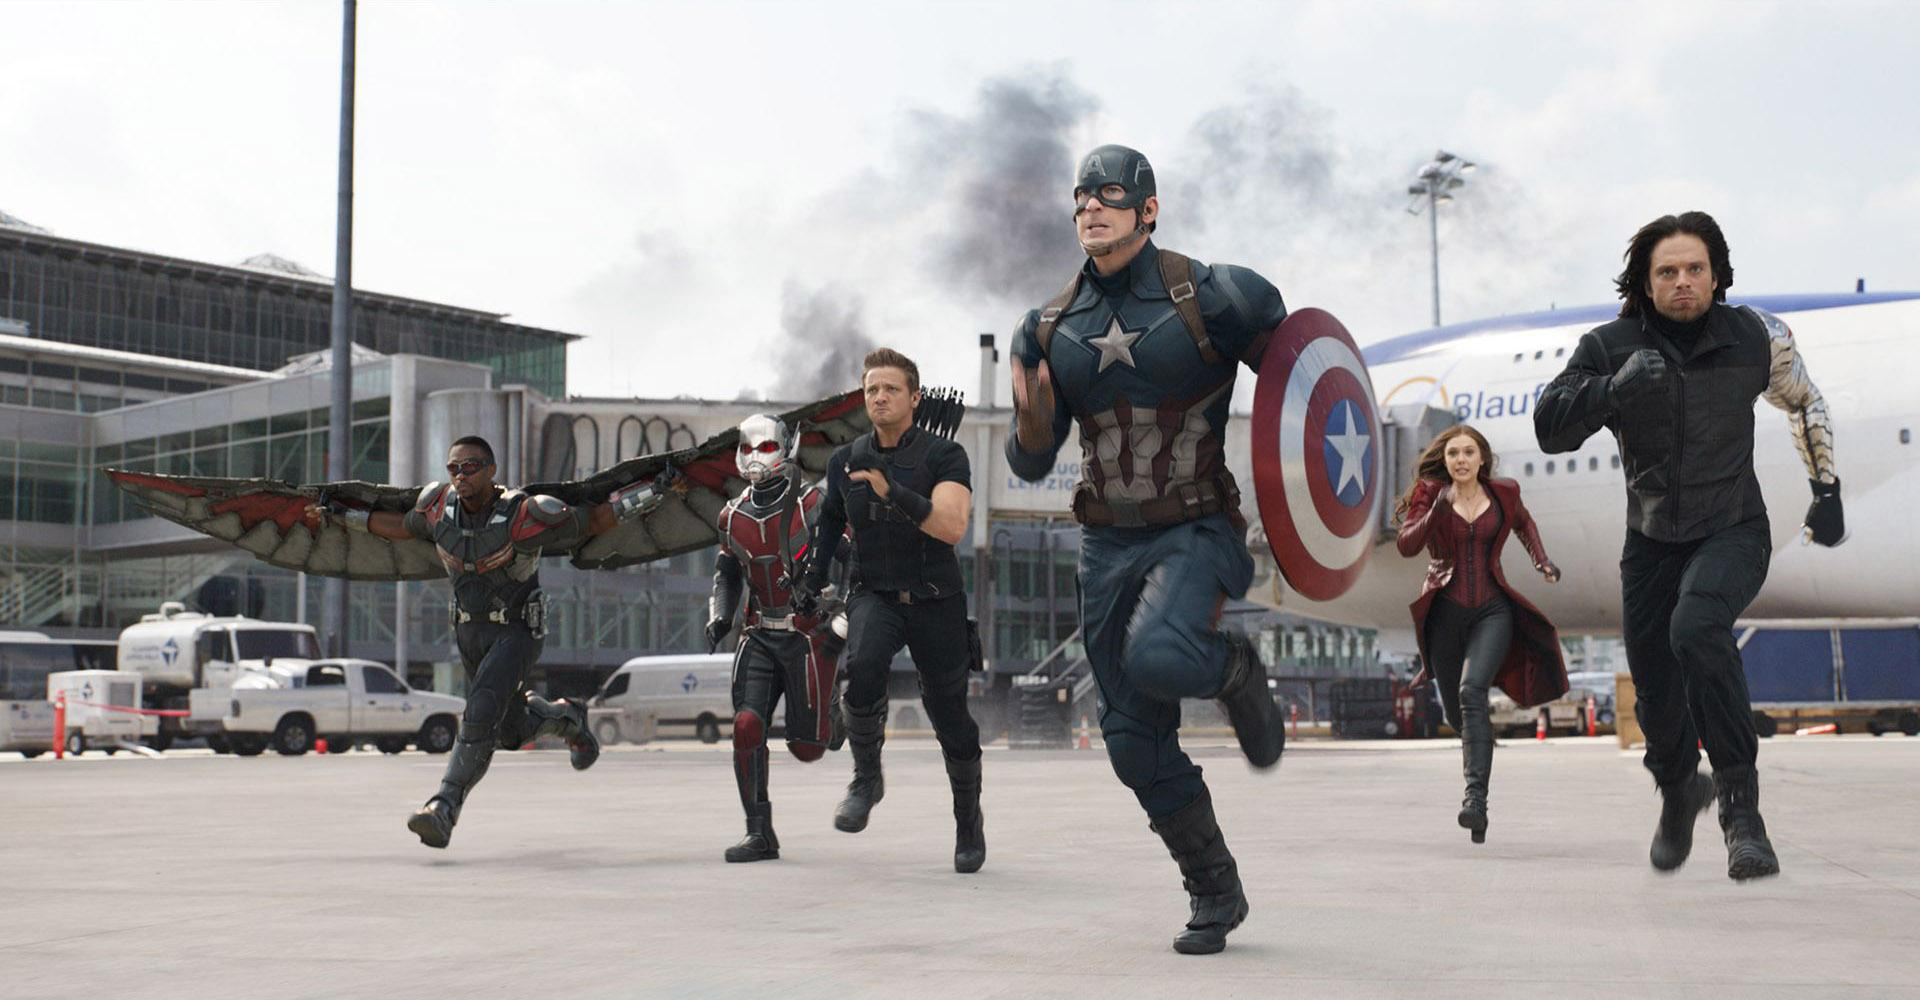 The Falcon (Anthony Mackie), Ant-Man (Paul Rudd), Hawkeye (Jeremy Renner), Captain America (Chris Evans), Scarlet Witch (Elizabeth Olsen) and Bucky Barnes (Sebastian Stan) in Captain America: Civil War (2016)